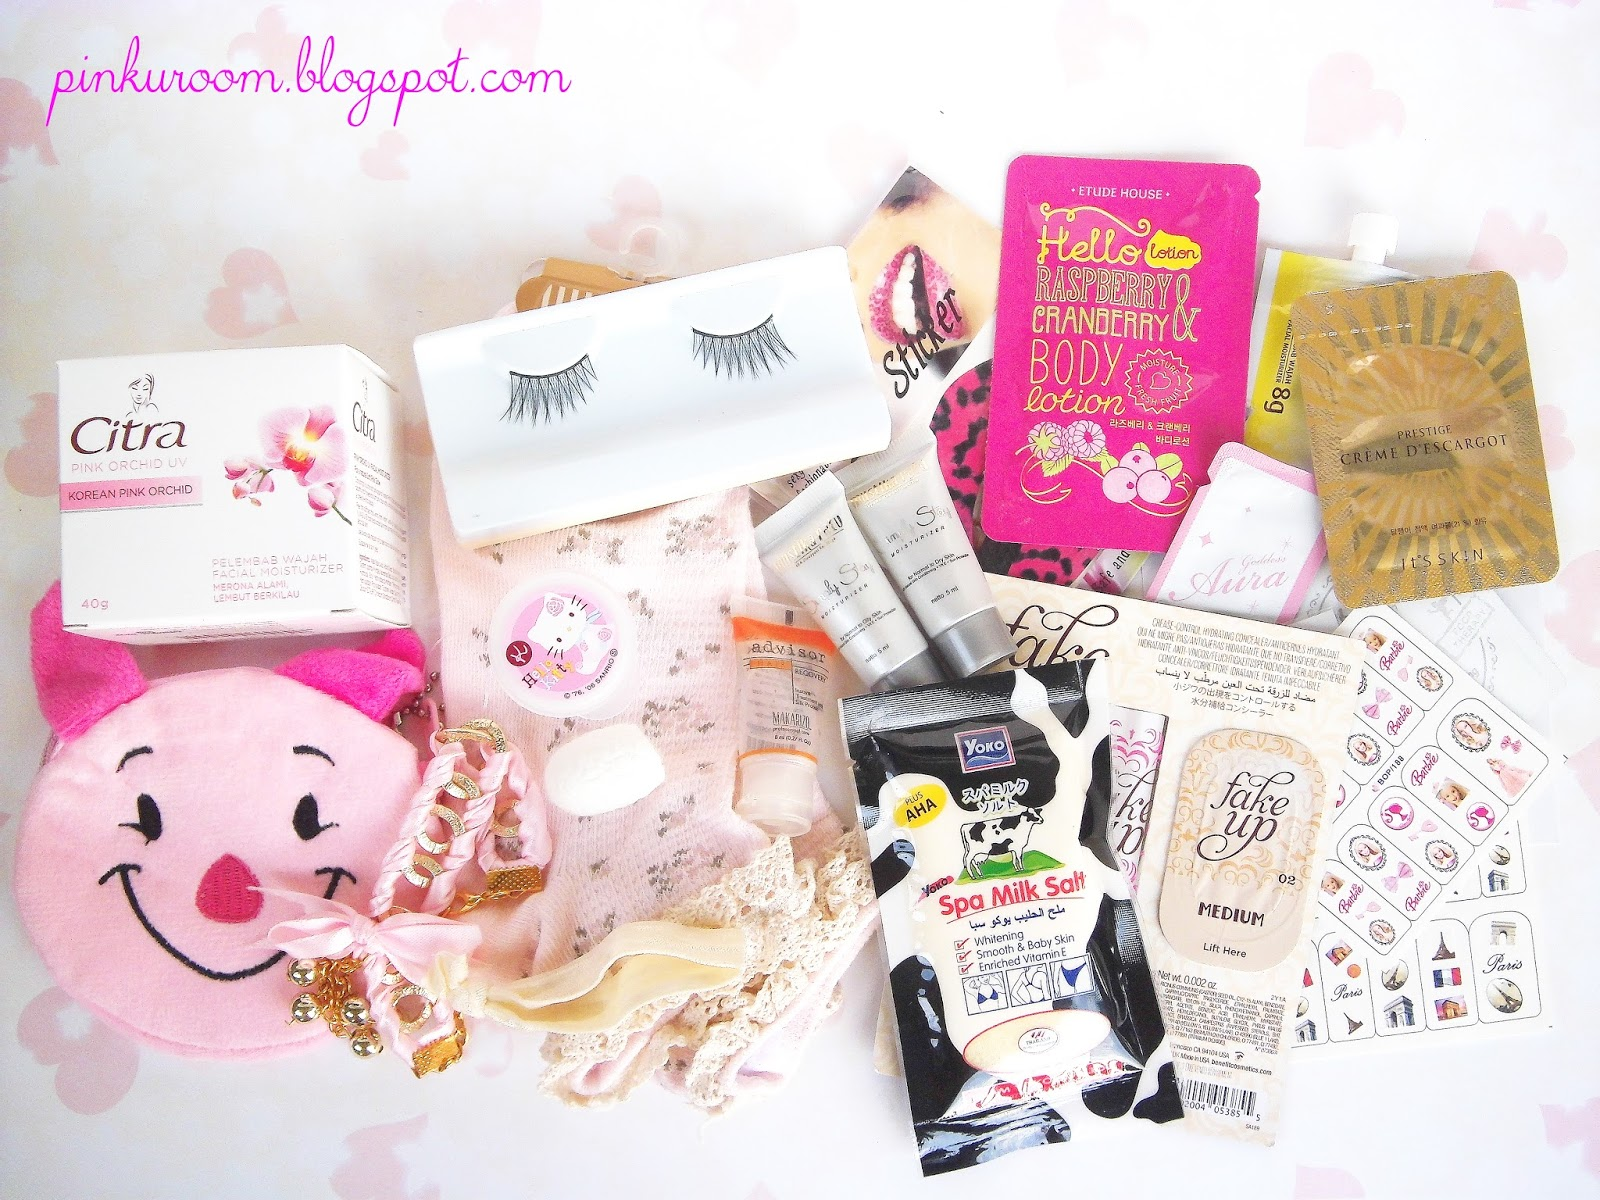 Hello Kitty Whitening Face Cream Amazon 2018 Masker Wajah Nature Go Lumpur 3 Sachet Fast Easy Beautymnl